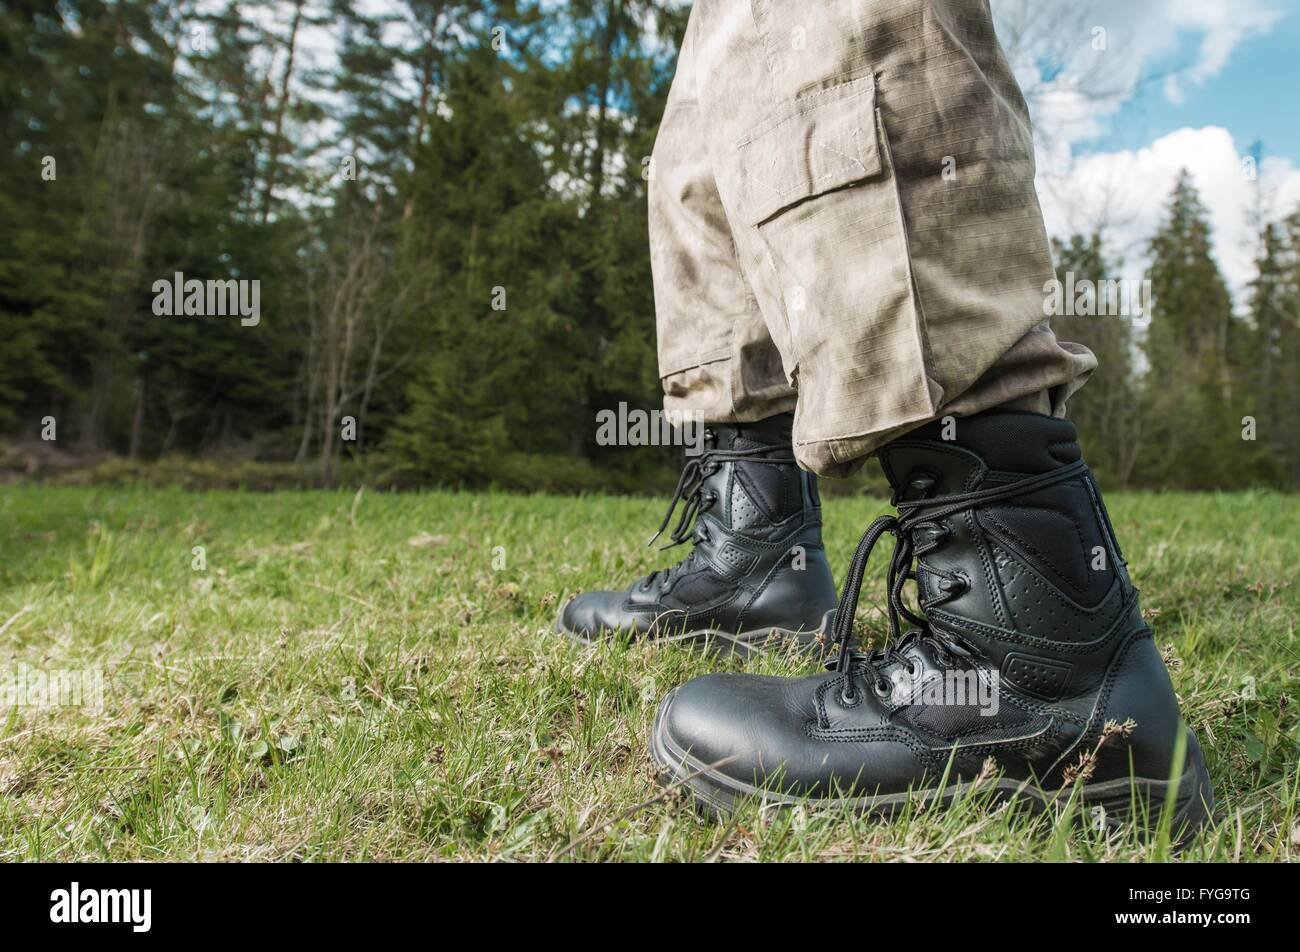 Poacher at Work Concept. Poacher Military Grade Shoes Closeup with Forest in the Background. - Stock Image